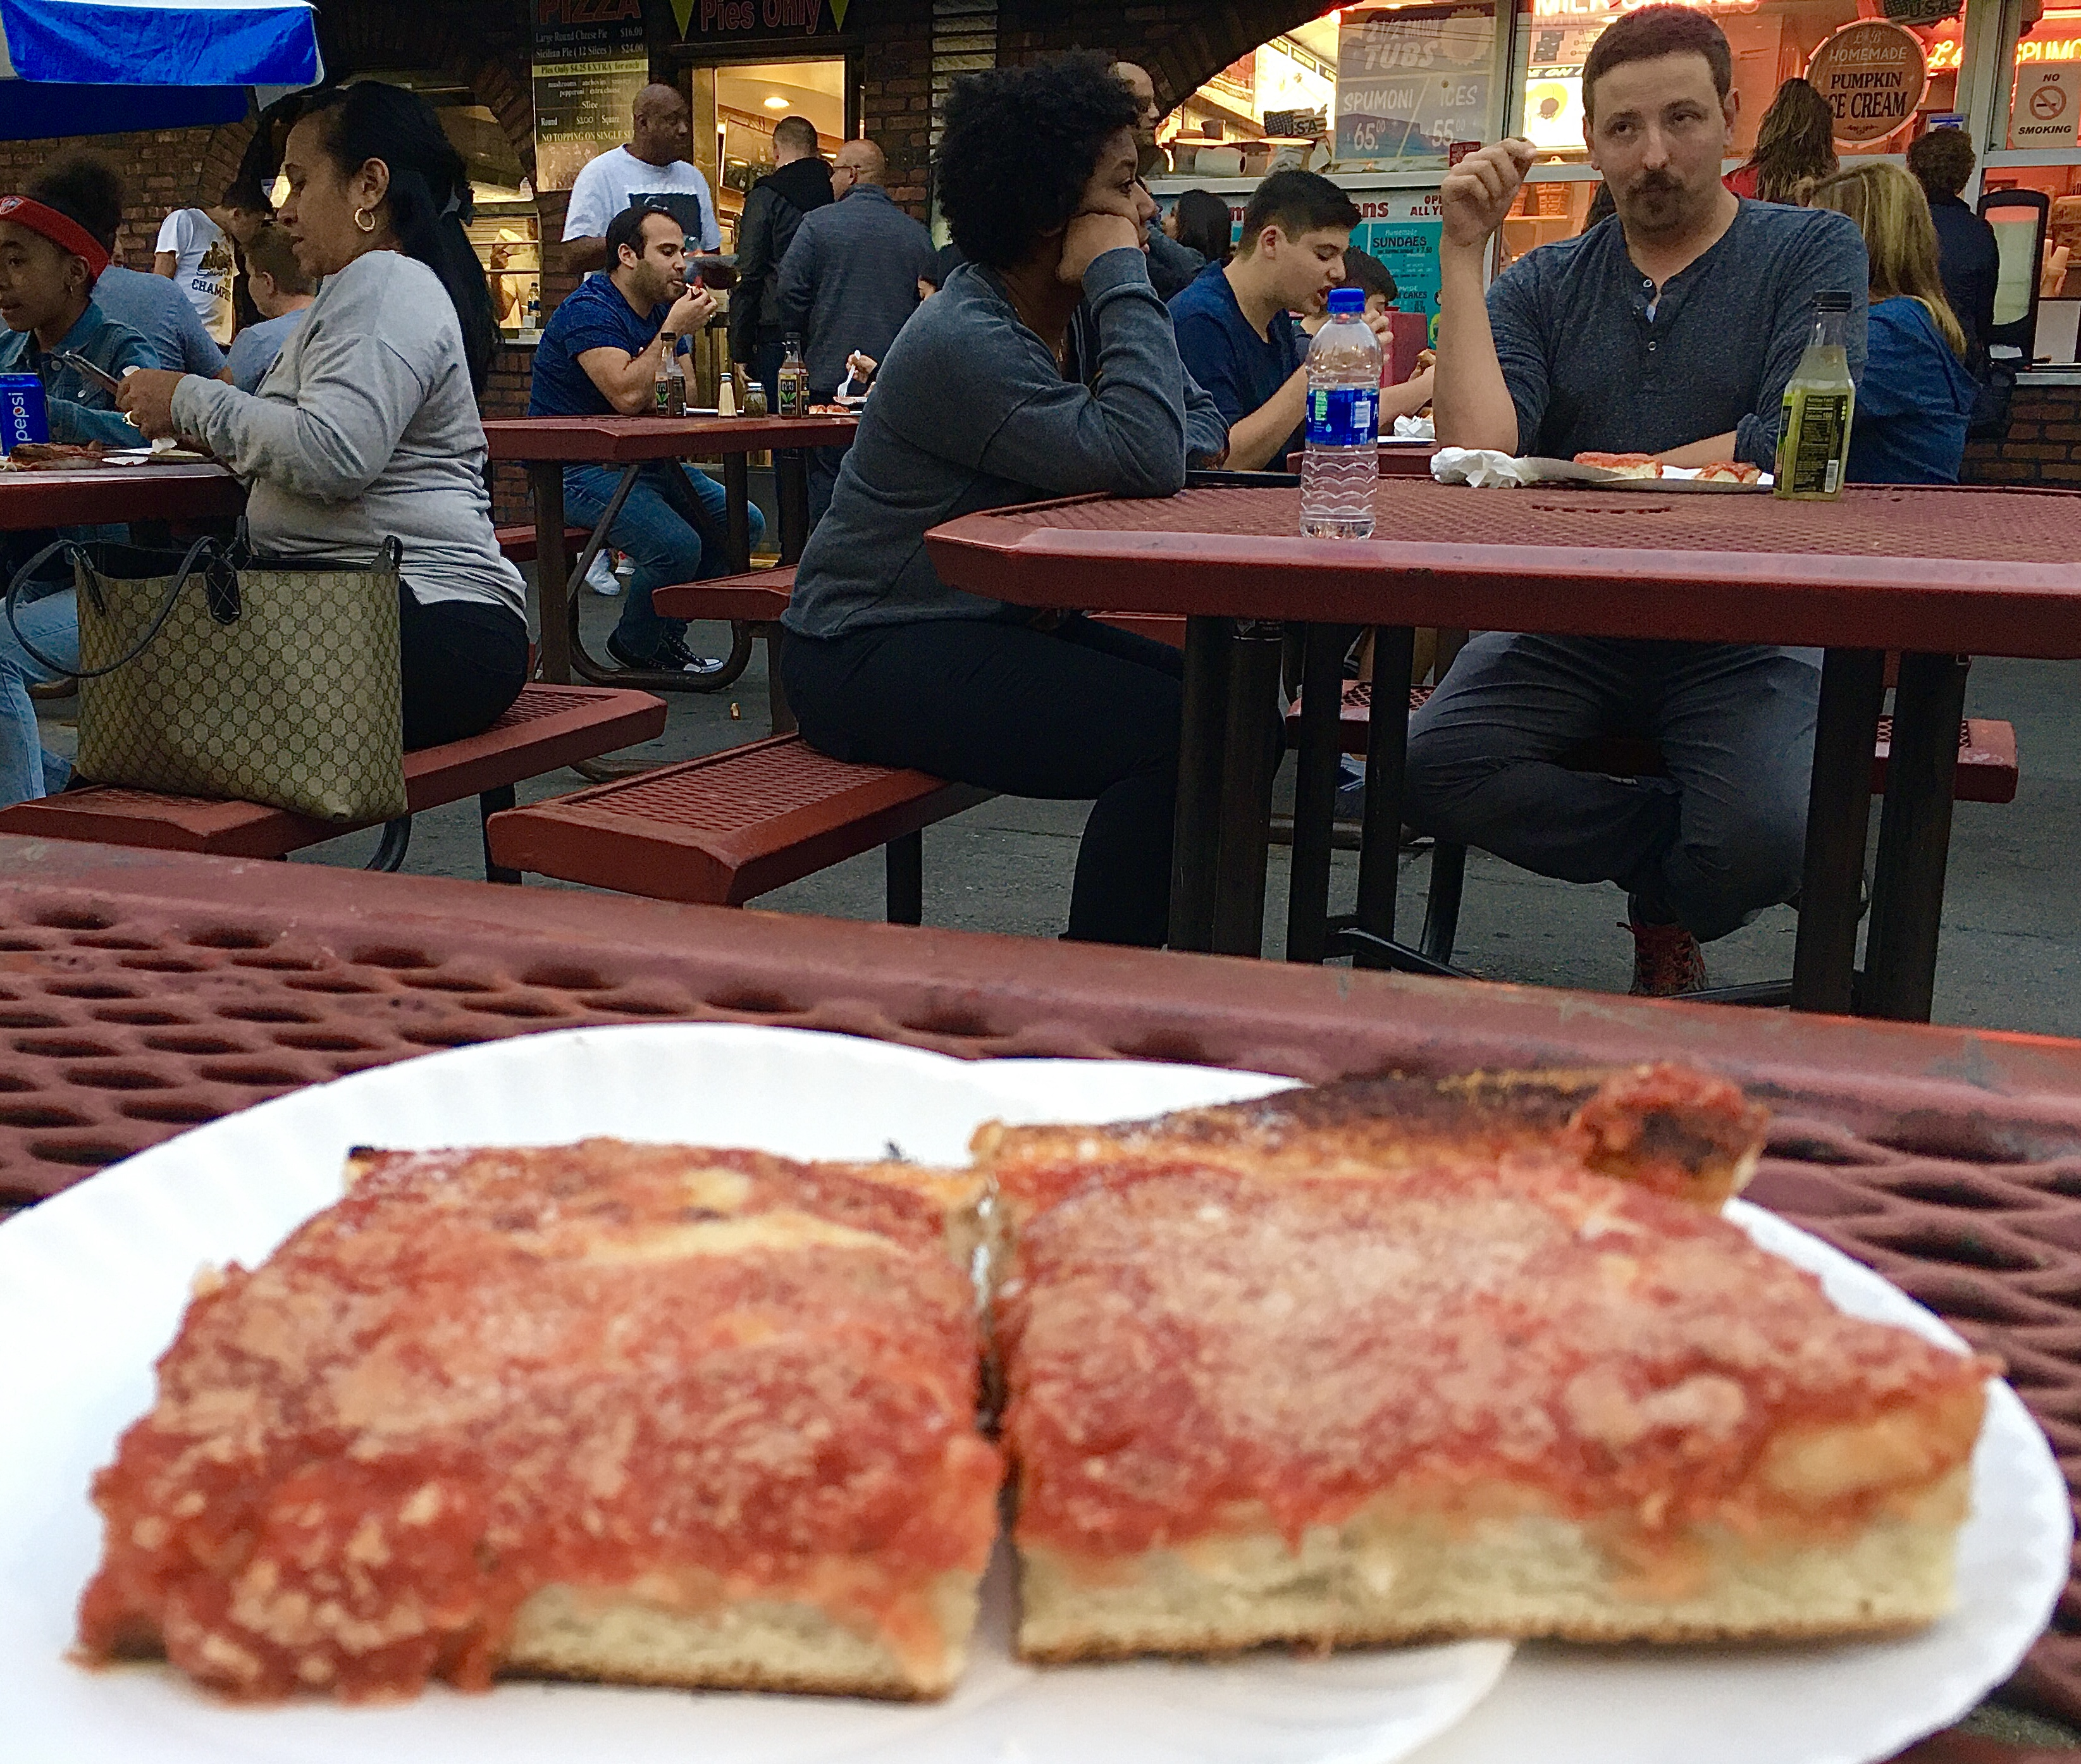 The pizza draws locals and tourists to L&B Spumoni Gardens. Eagle photo by Lore Croghan